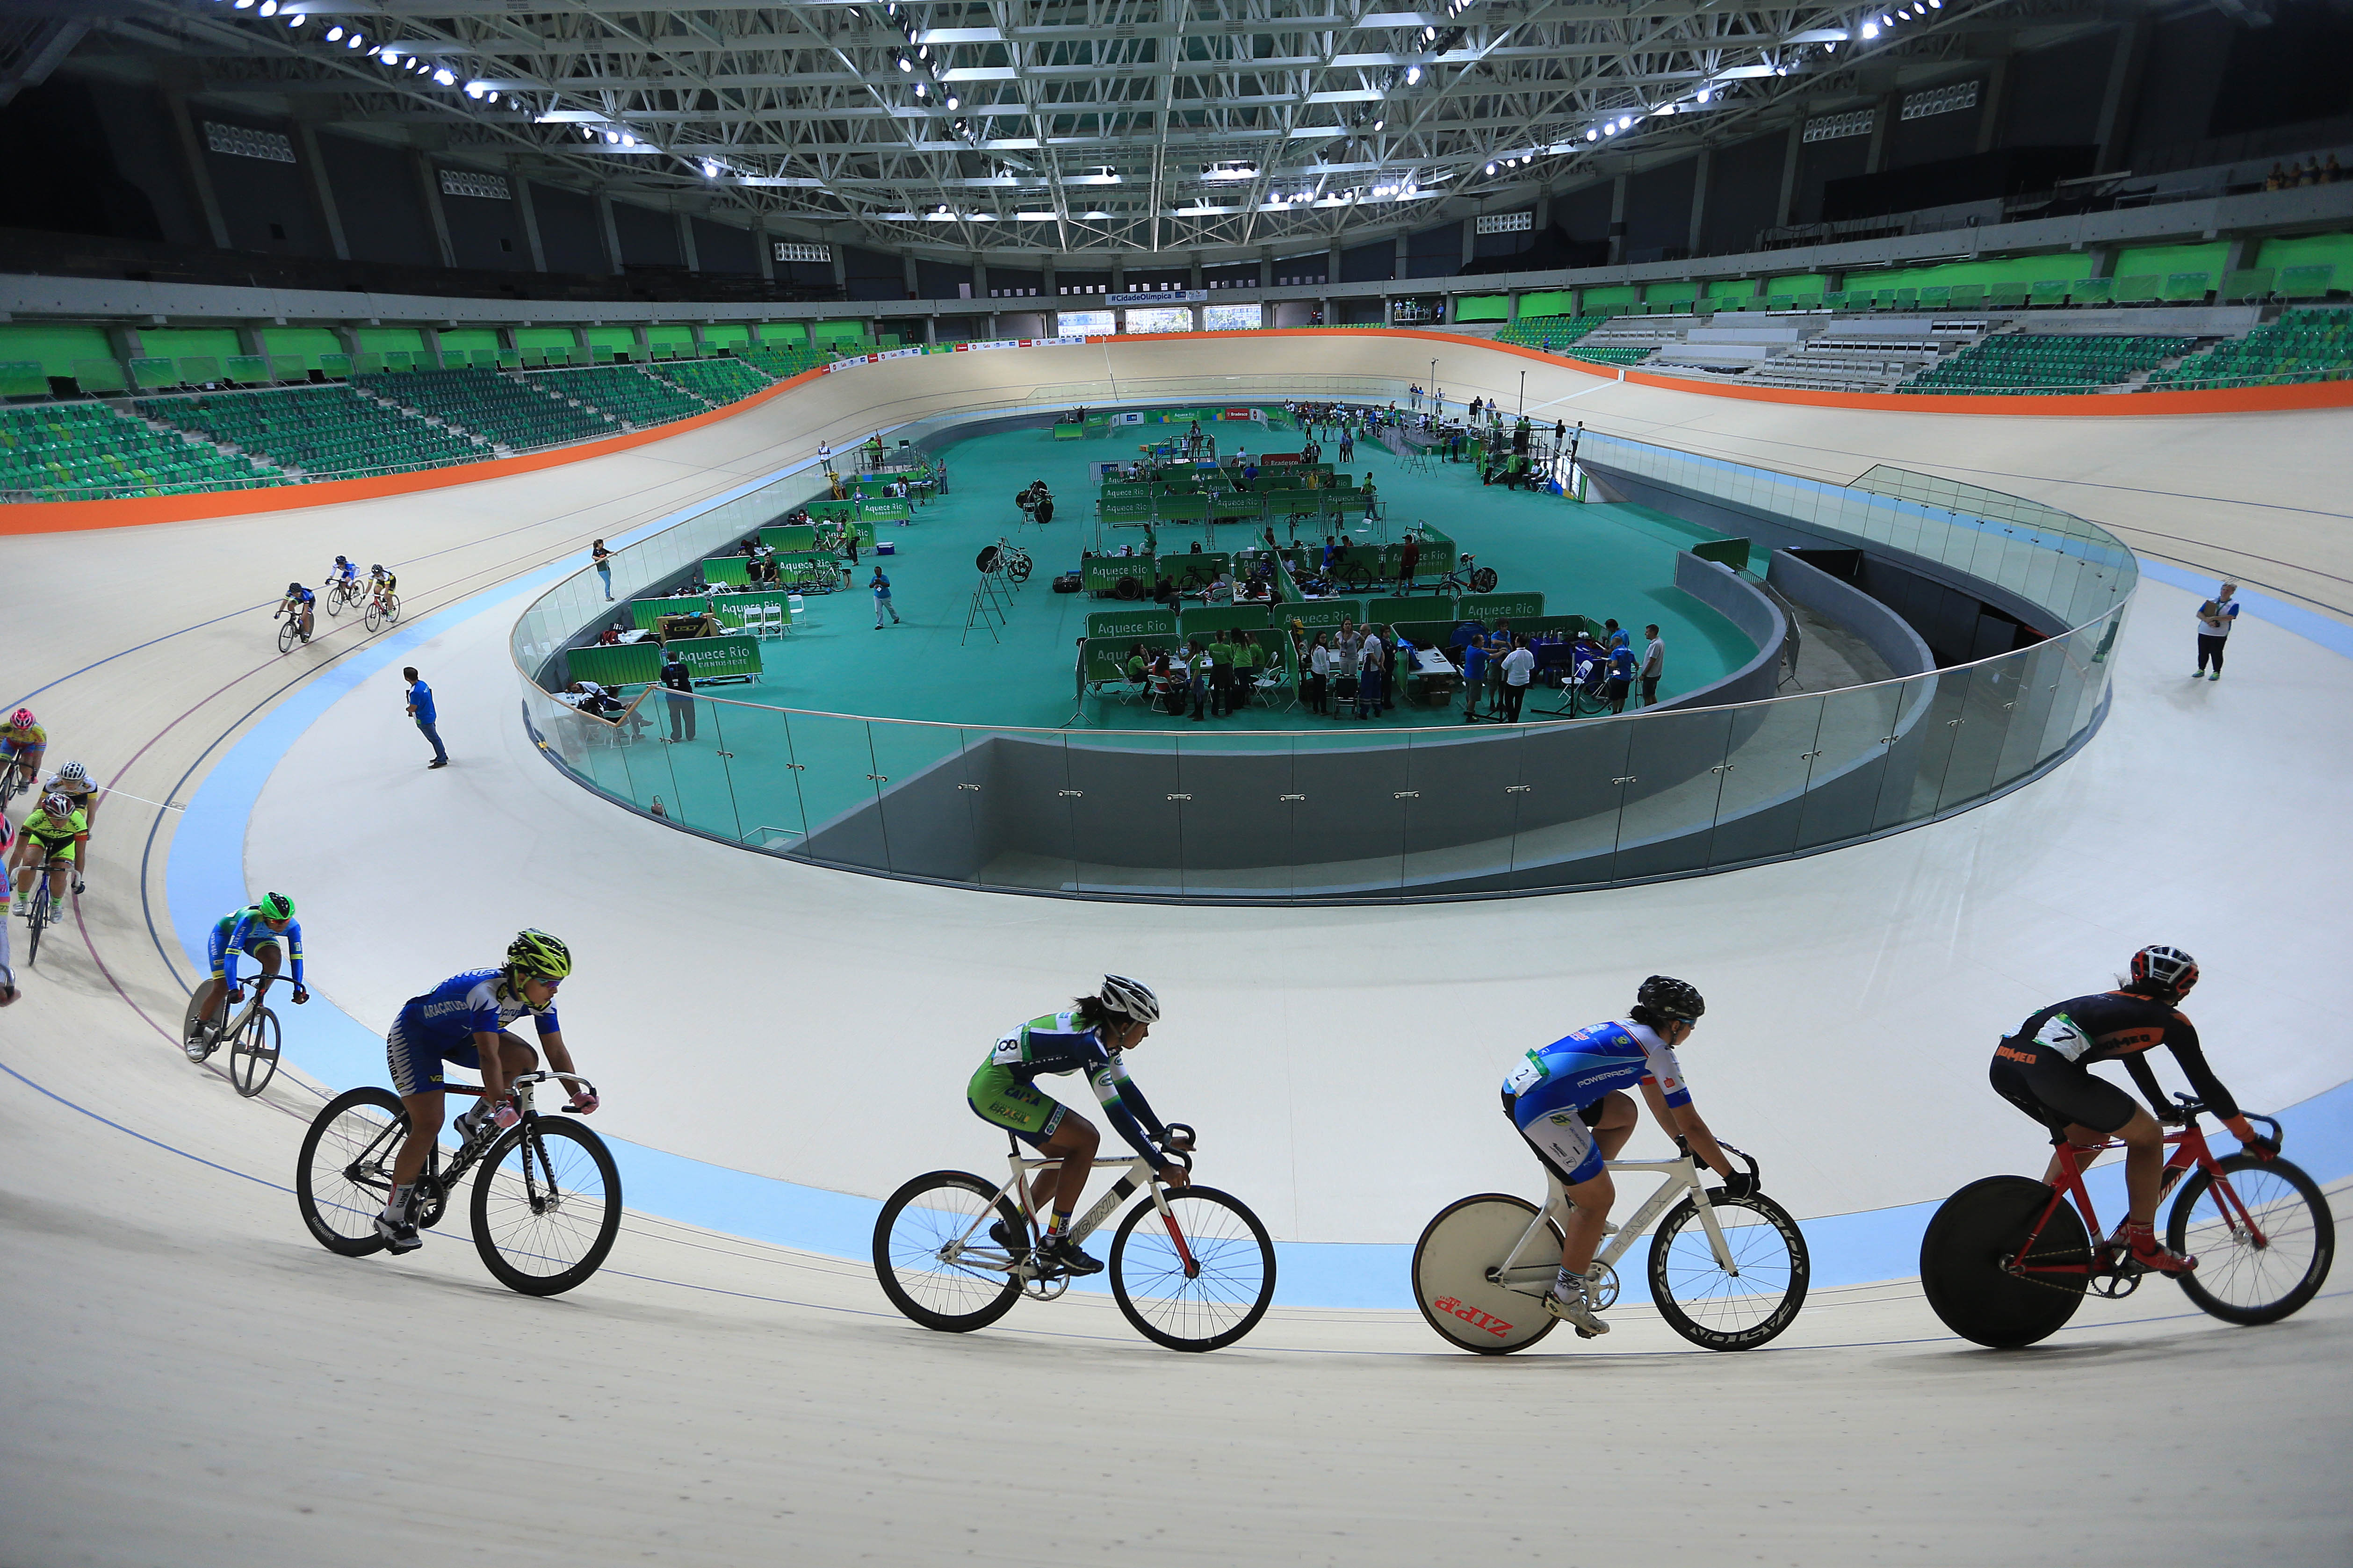 FileOlympic Velodrome In Barra Olympic Park Tested The Track 250616 1